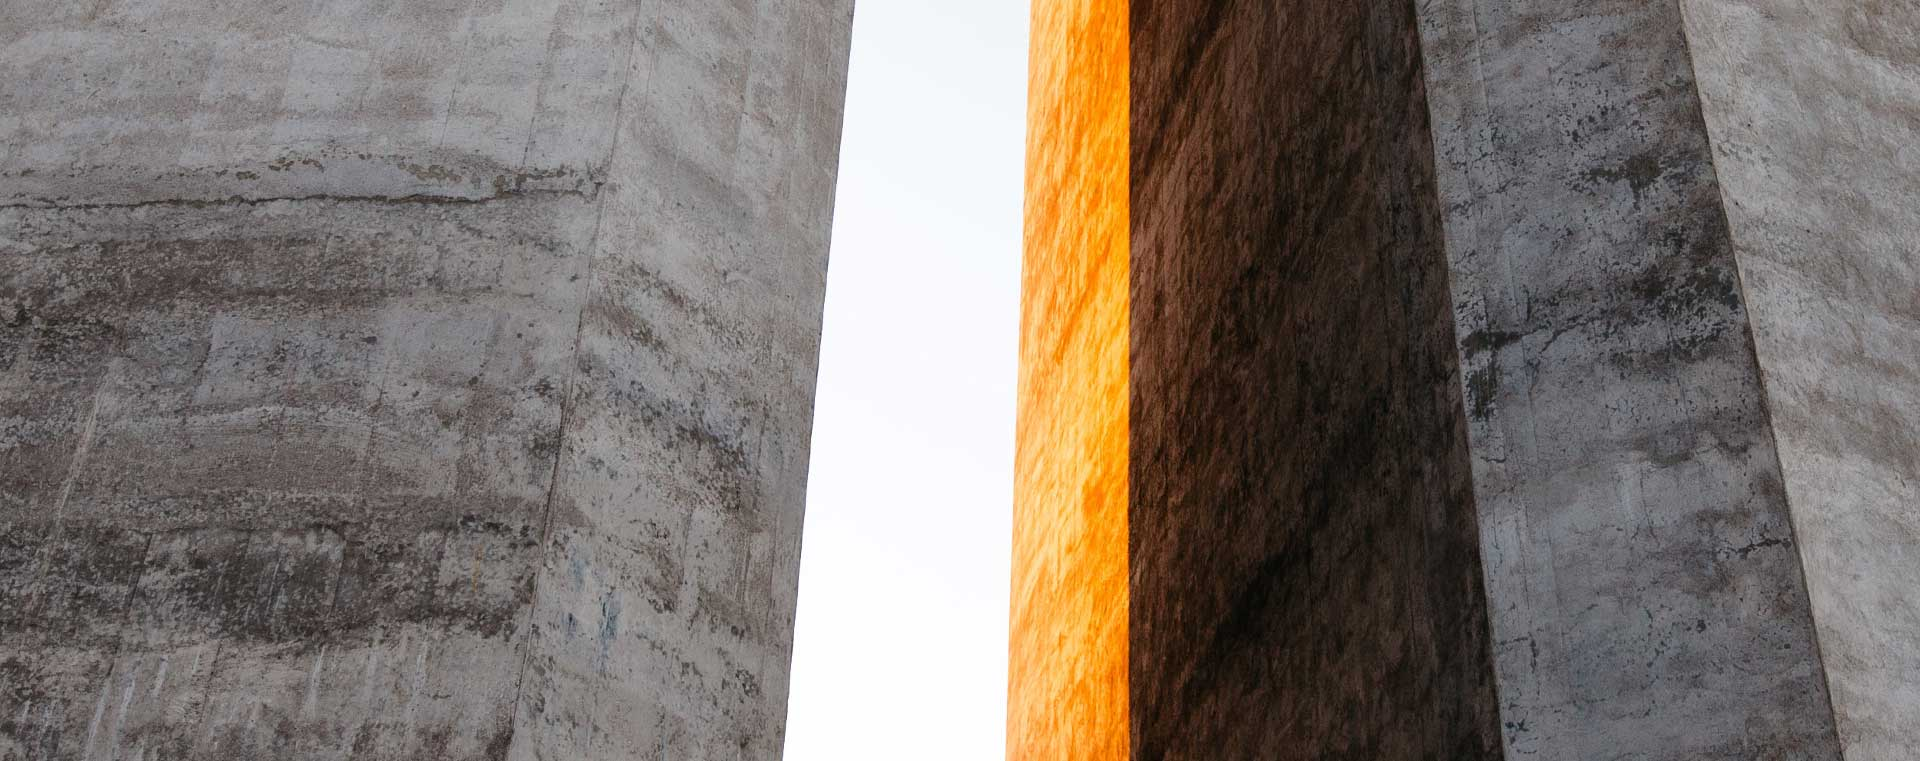 concrete-grey-orange-towers